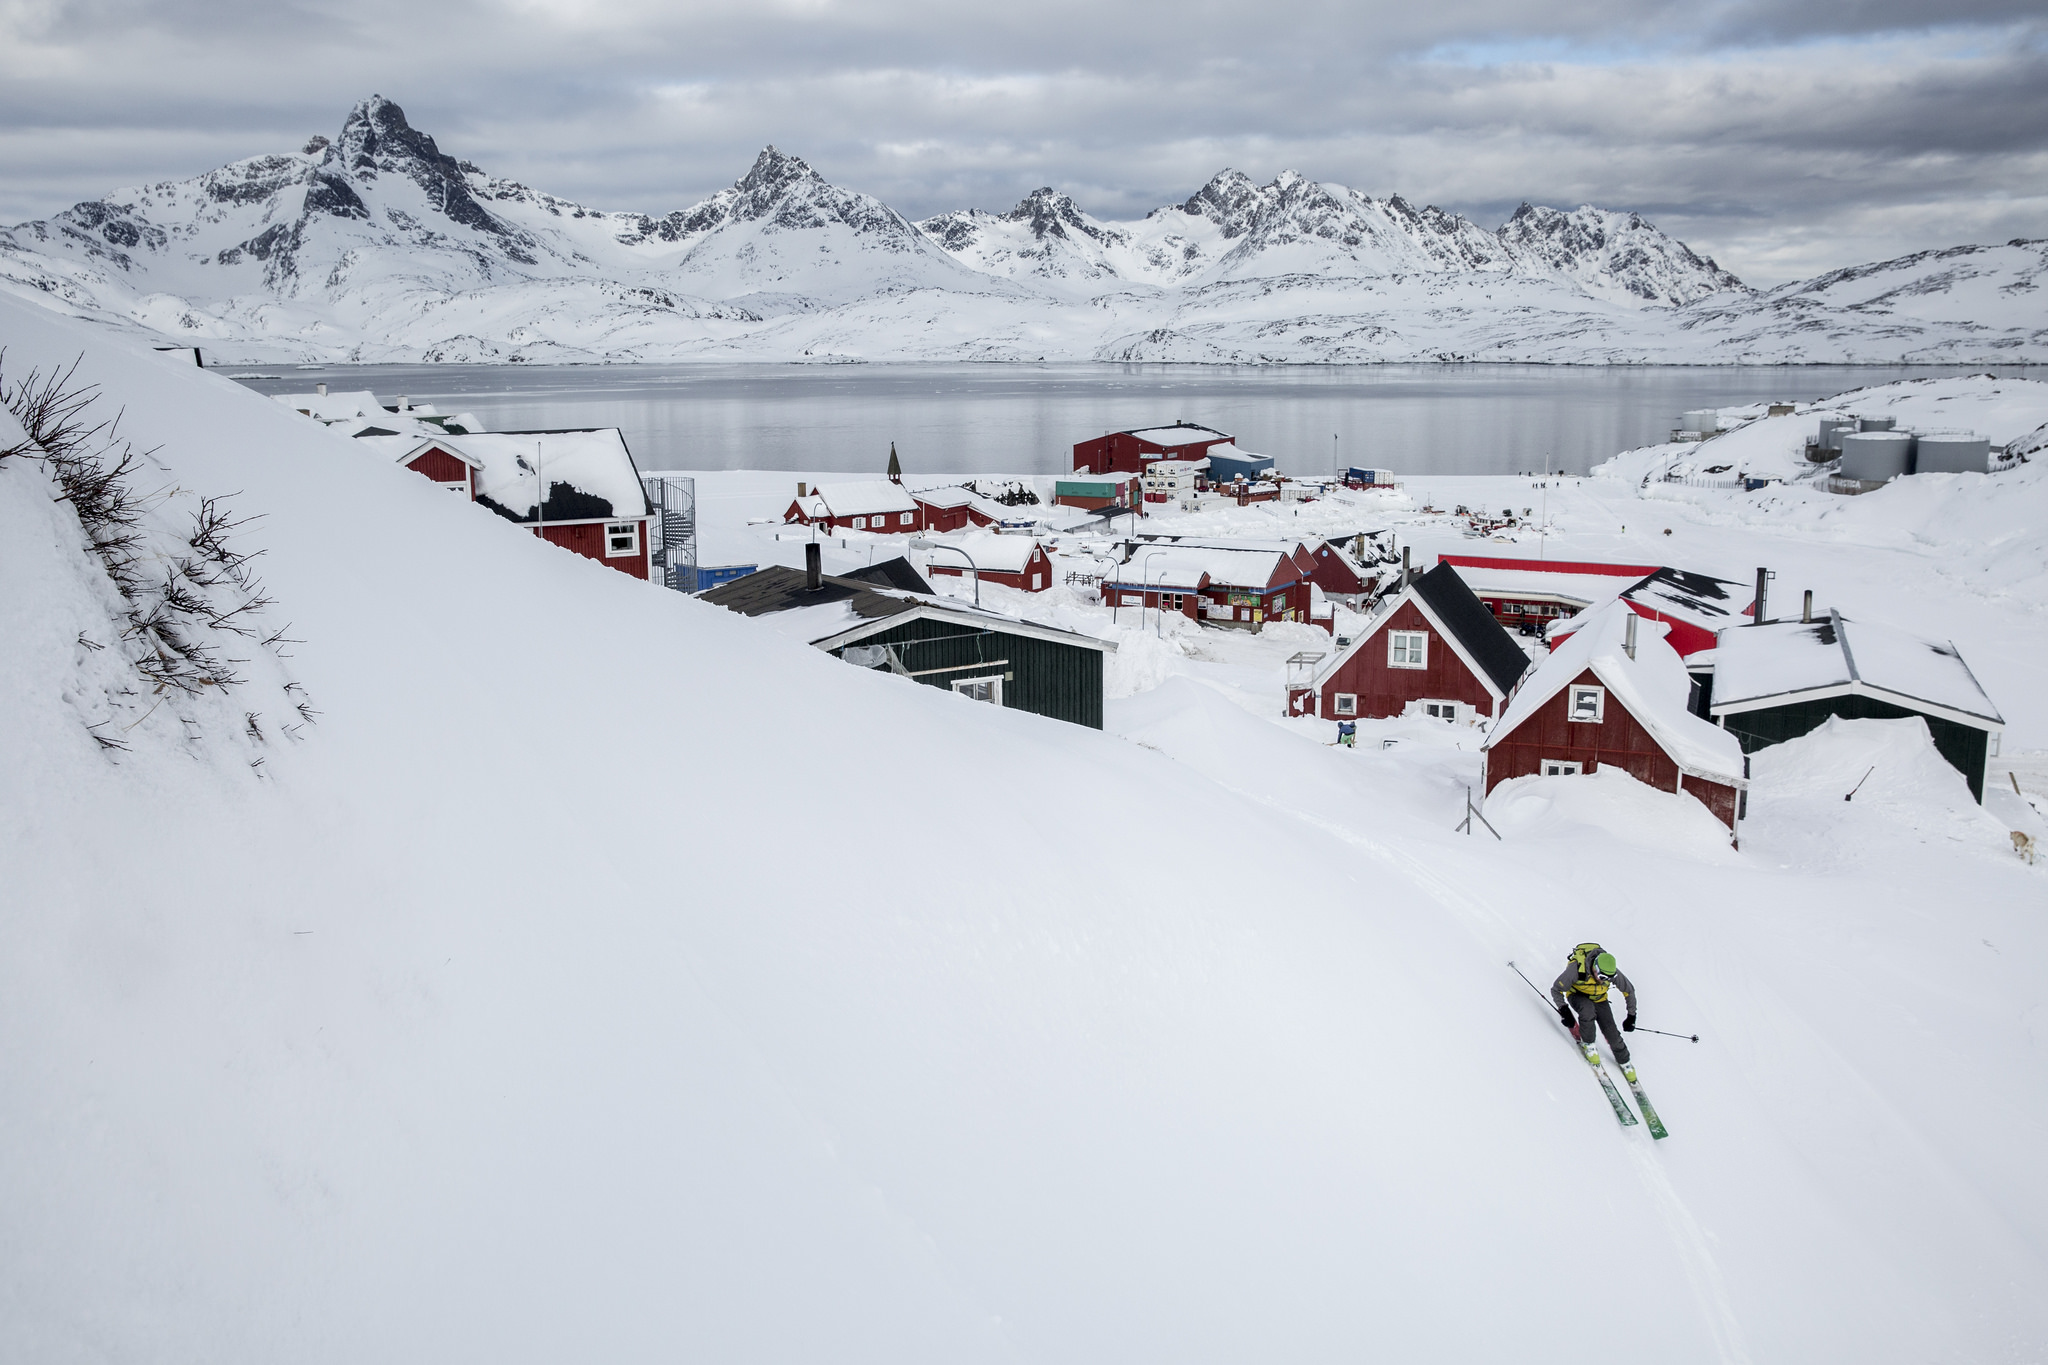 Christmas In Greenland.3 Curious Christmas Traditions From The North Pole The